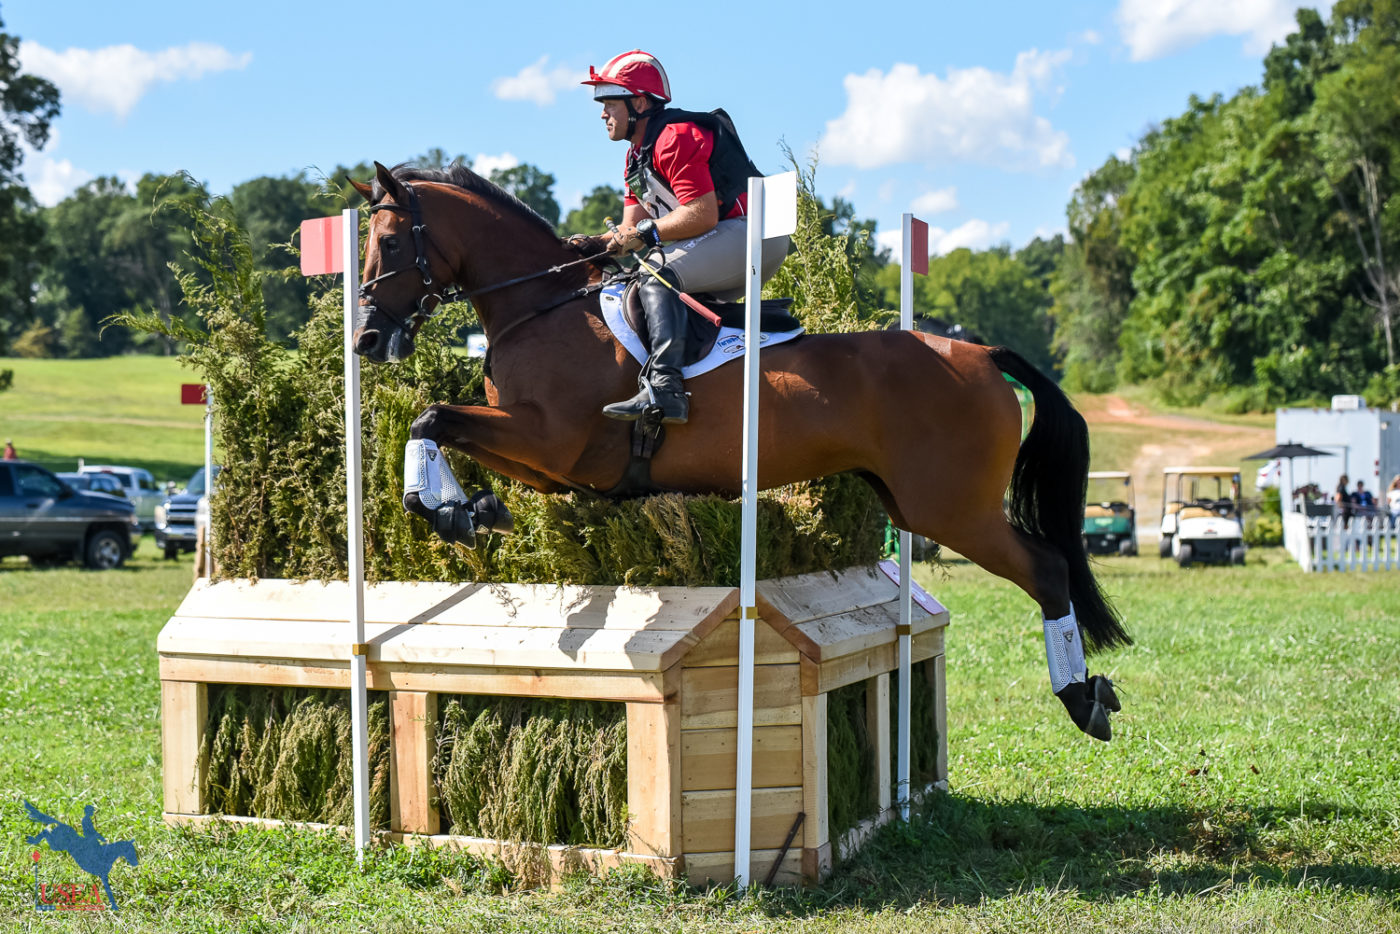 CCI3*-S 3rd - Buck Davidson and Electric Lux - 32.2